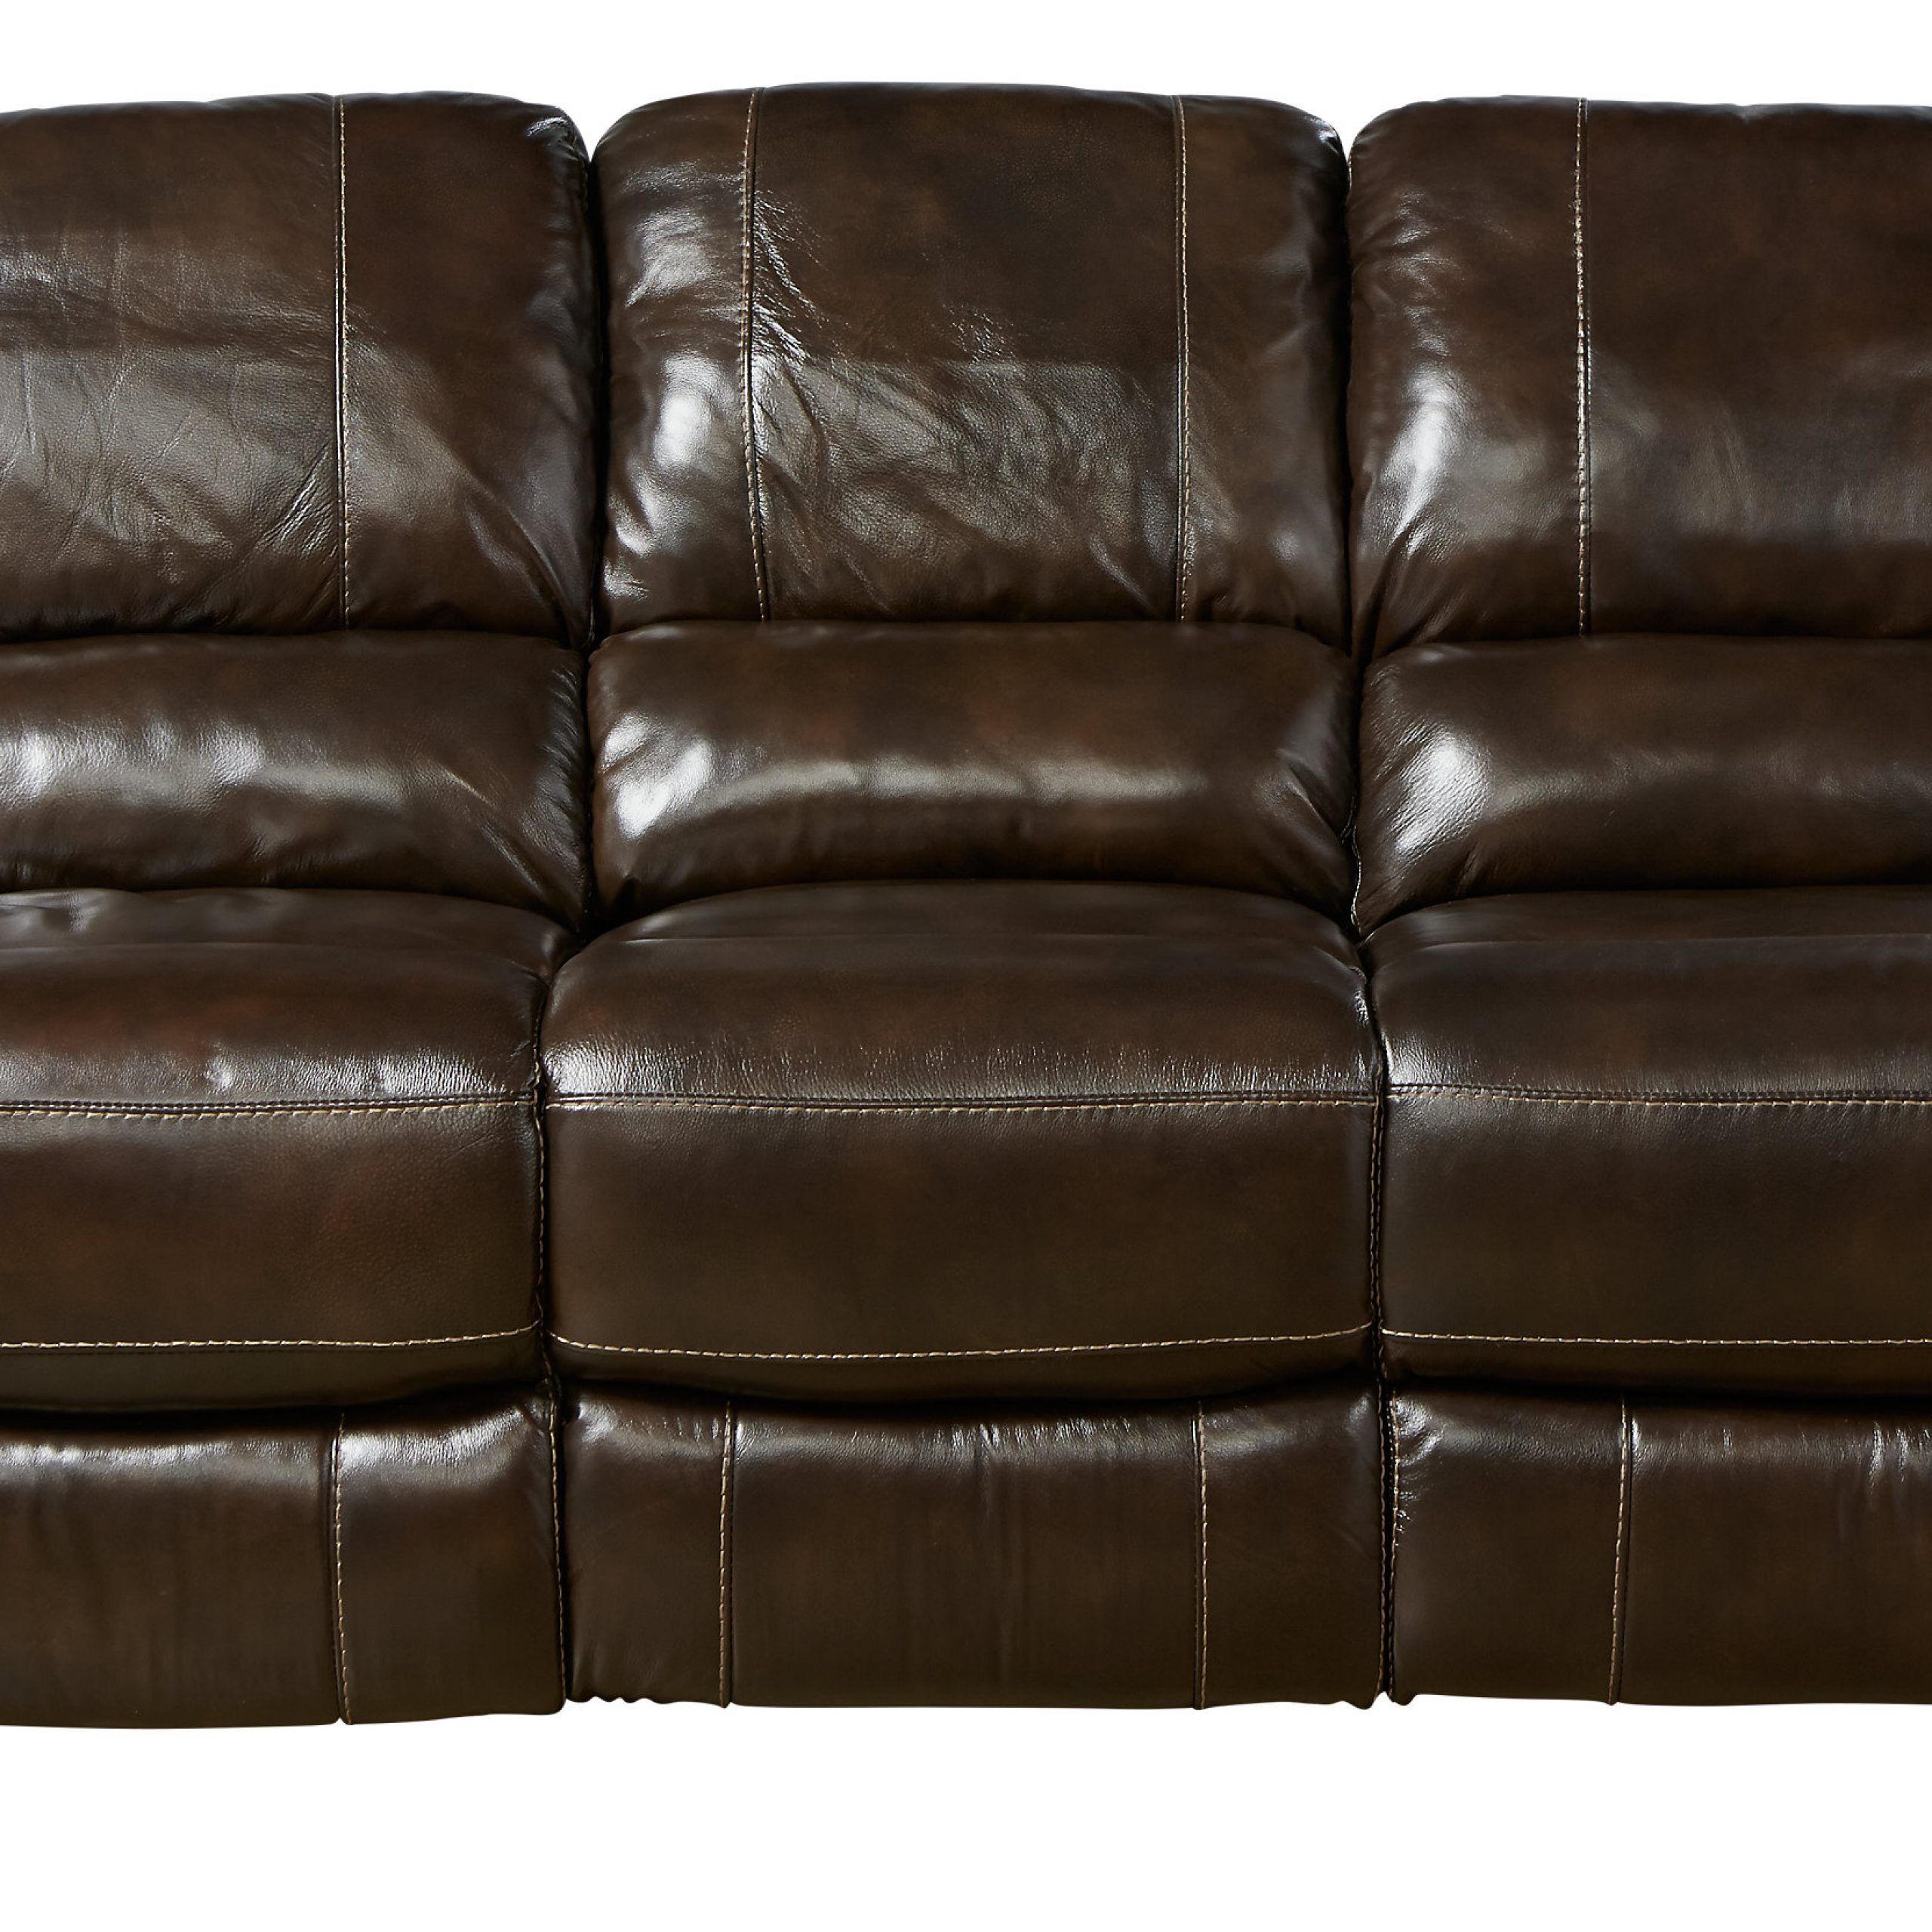 Expedition Brown Power Reclining Sofas With Regard To Fashionable $1, (View 5 of 20)